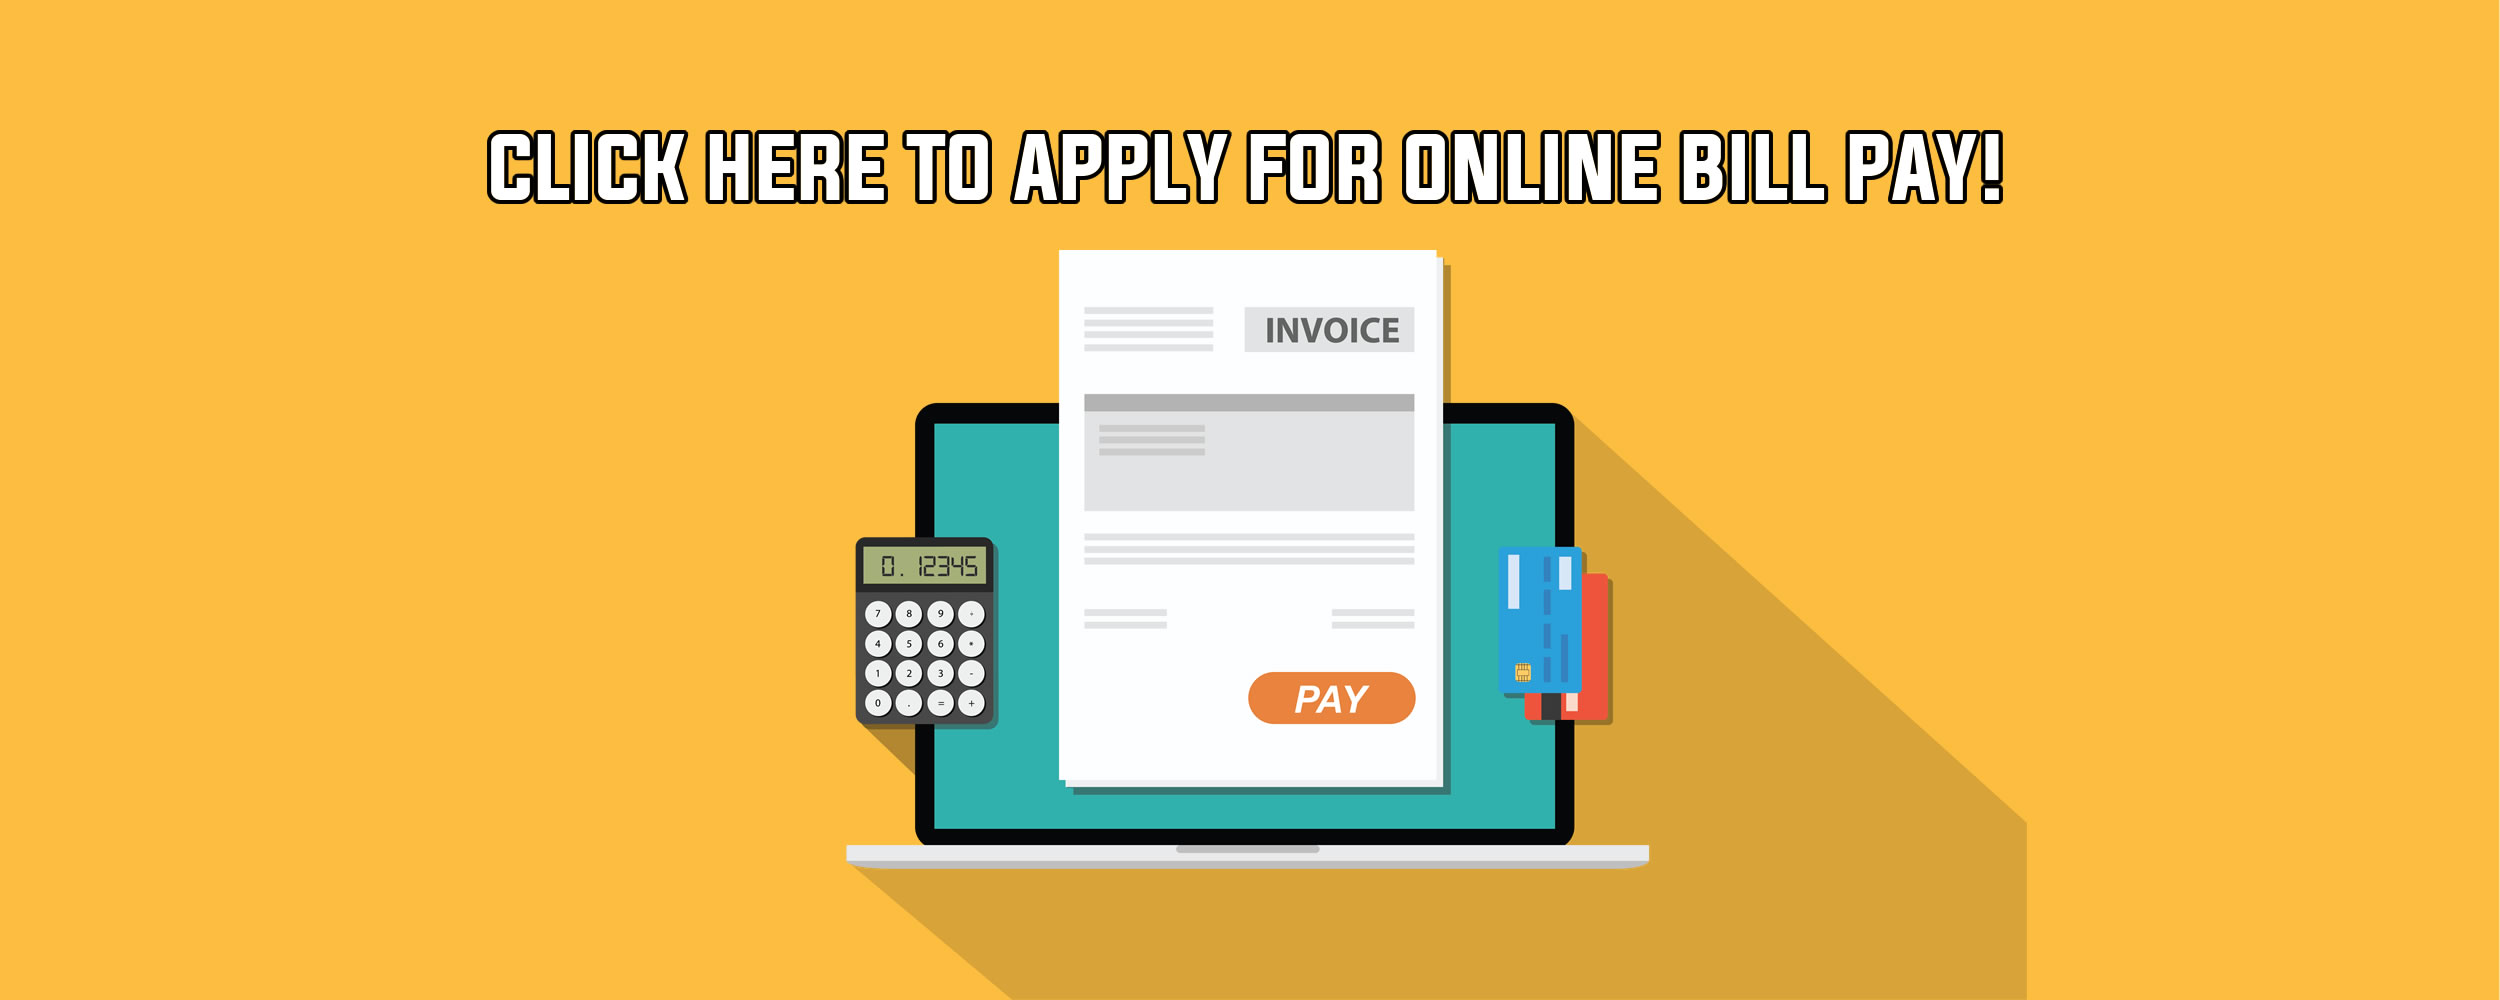 Apply For Online Bill Pay